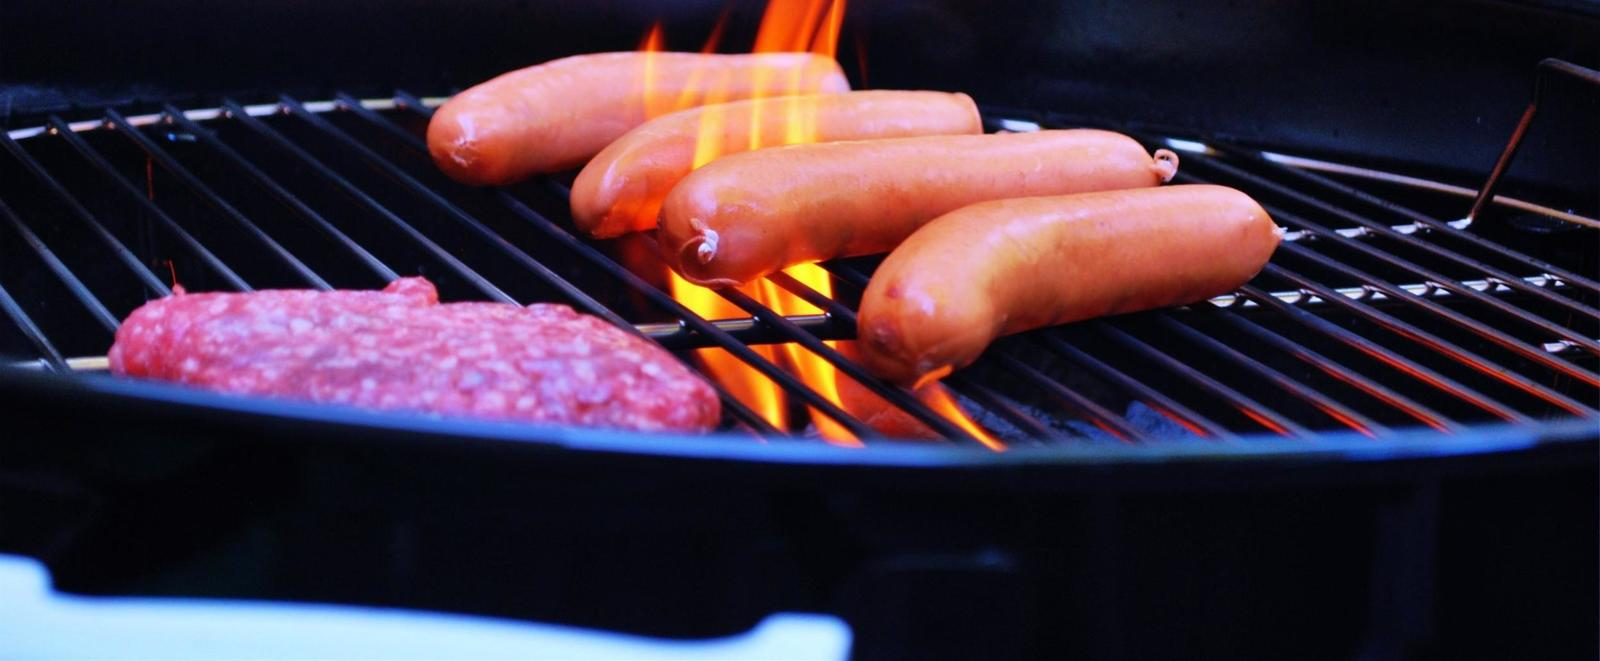 BBQ 101: How to Choose An Outdoor Barbecue Grill